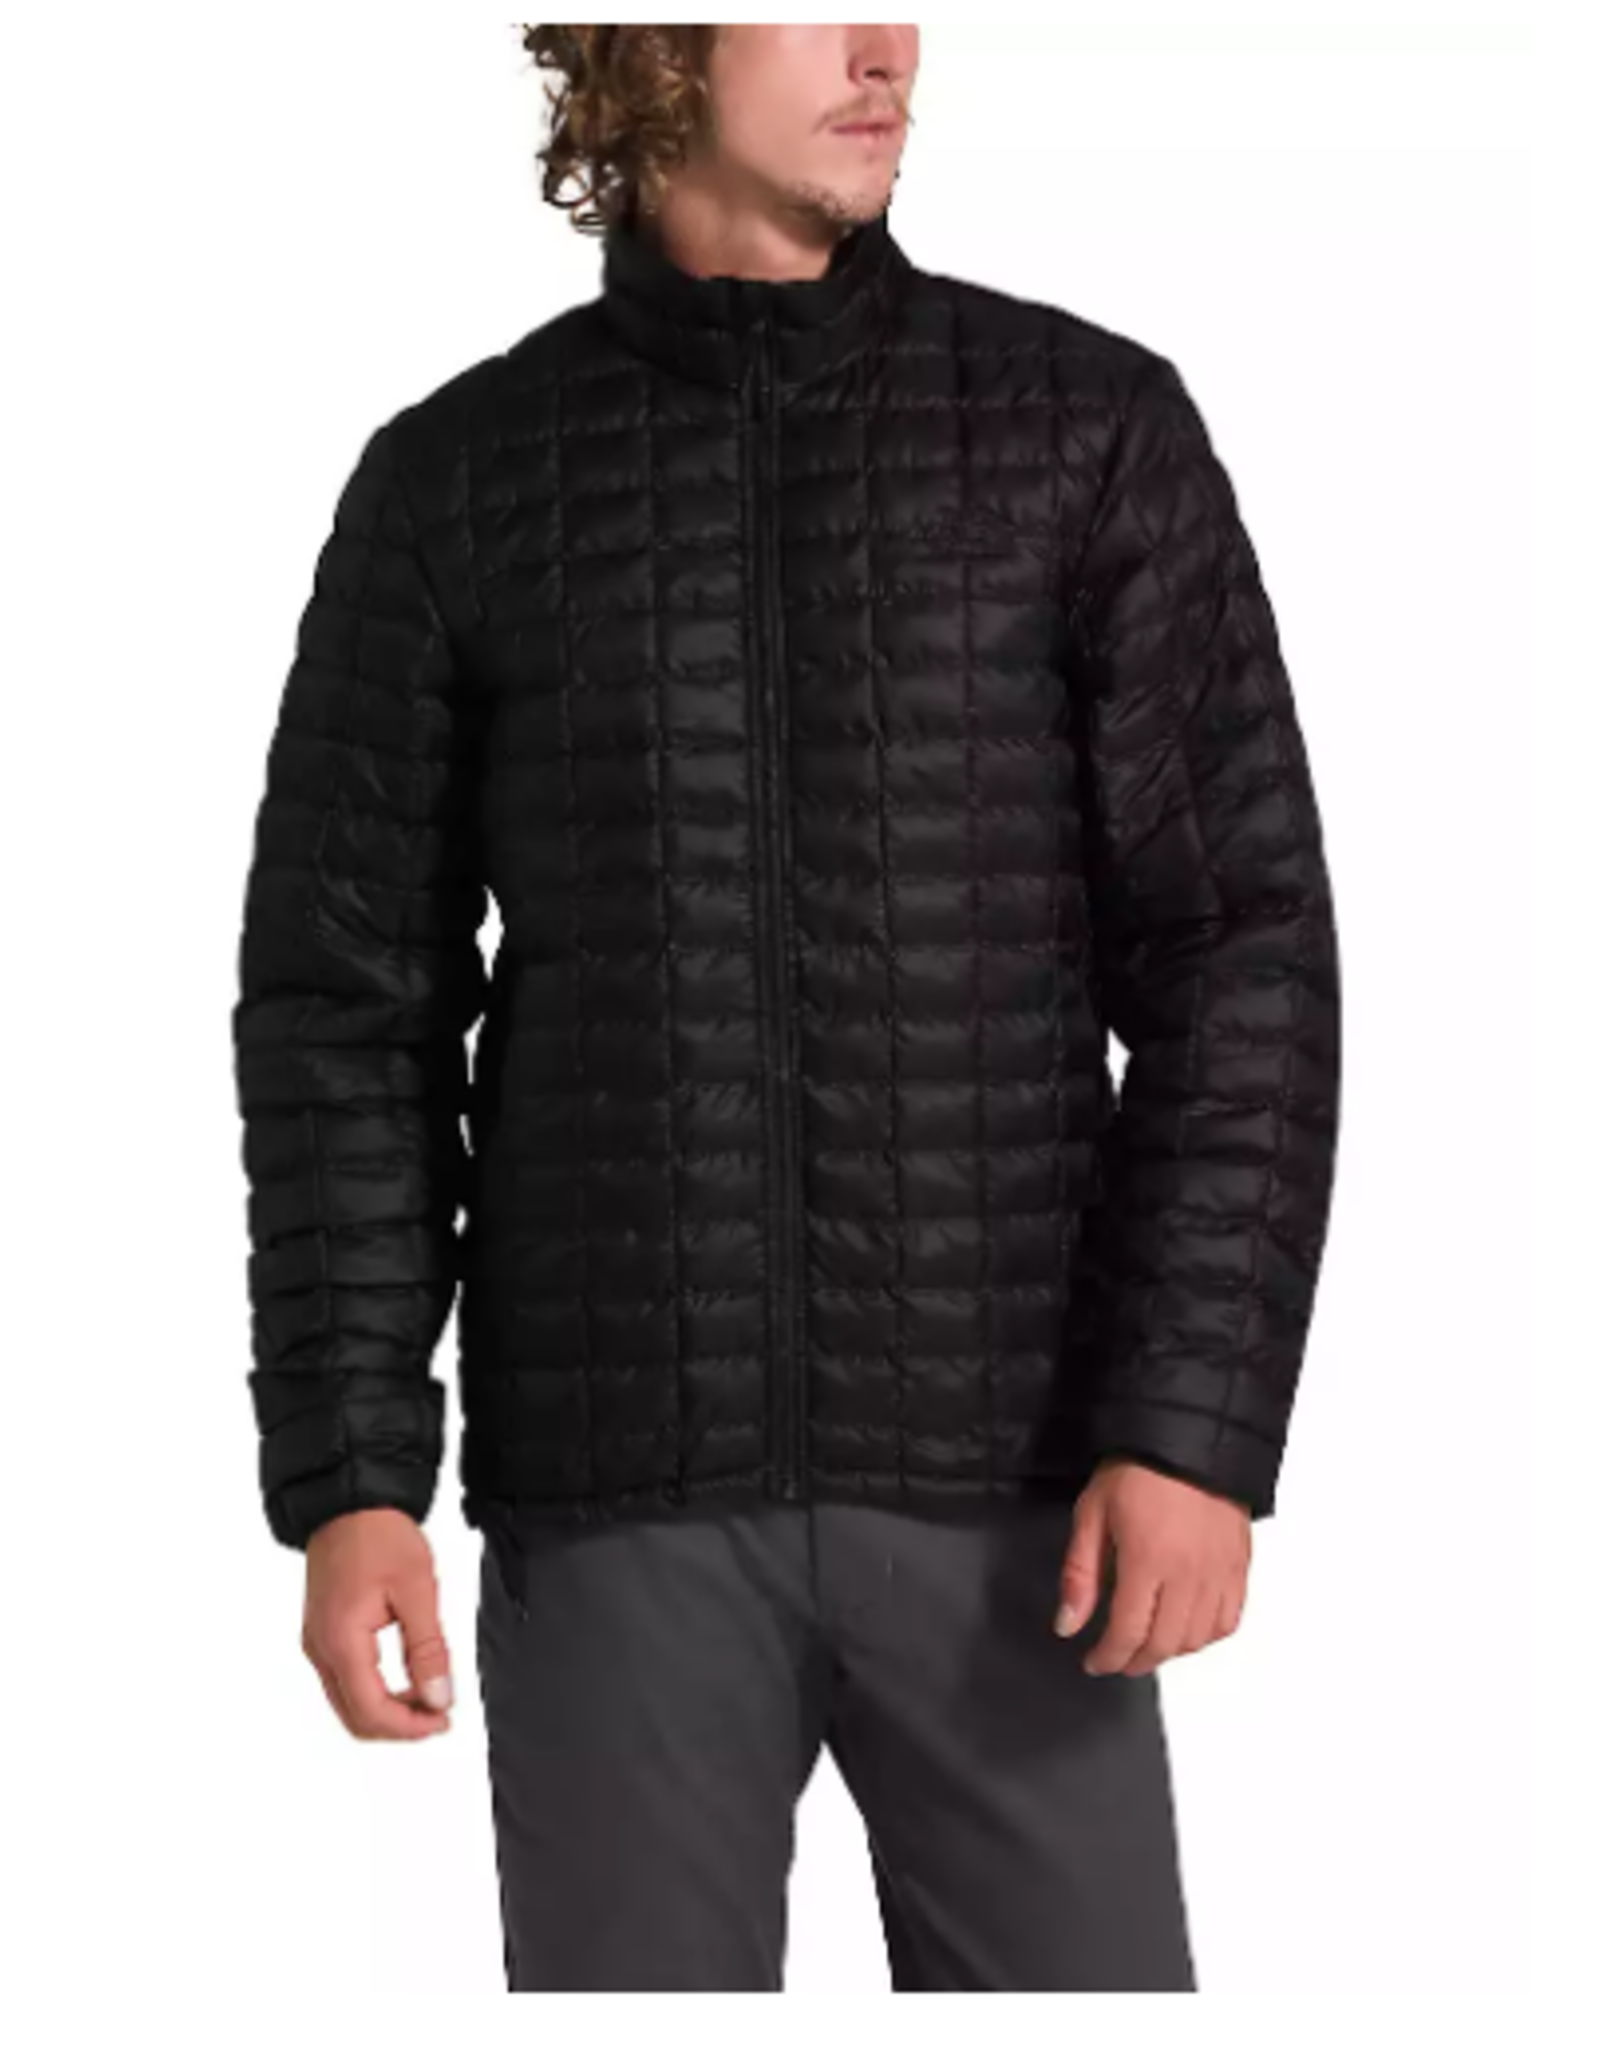 North Face Thermoball™ Eco Jacket - Black Matte